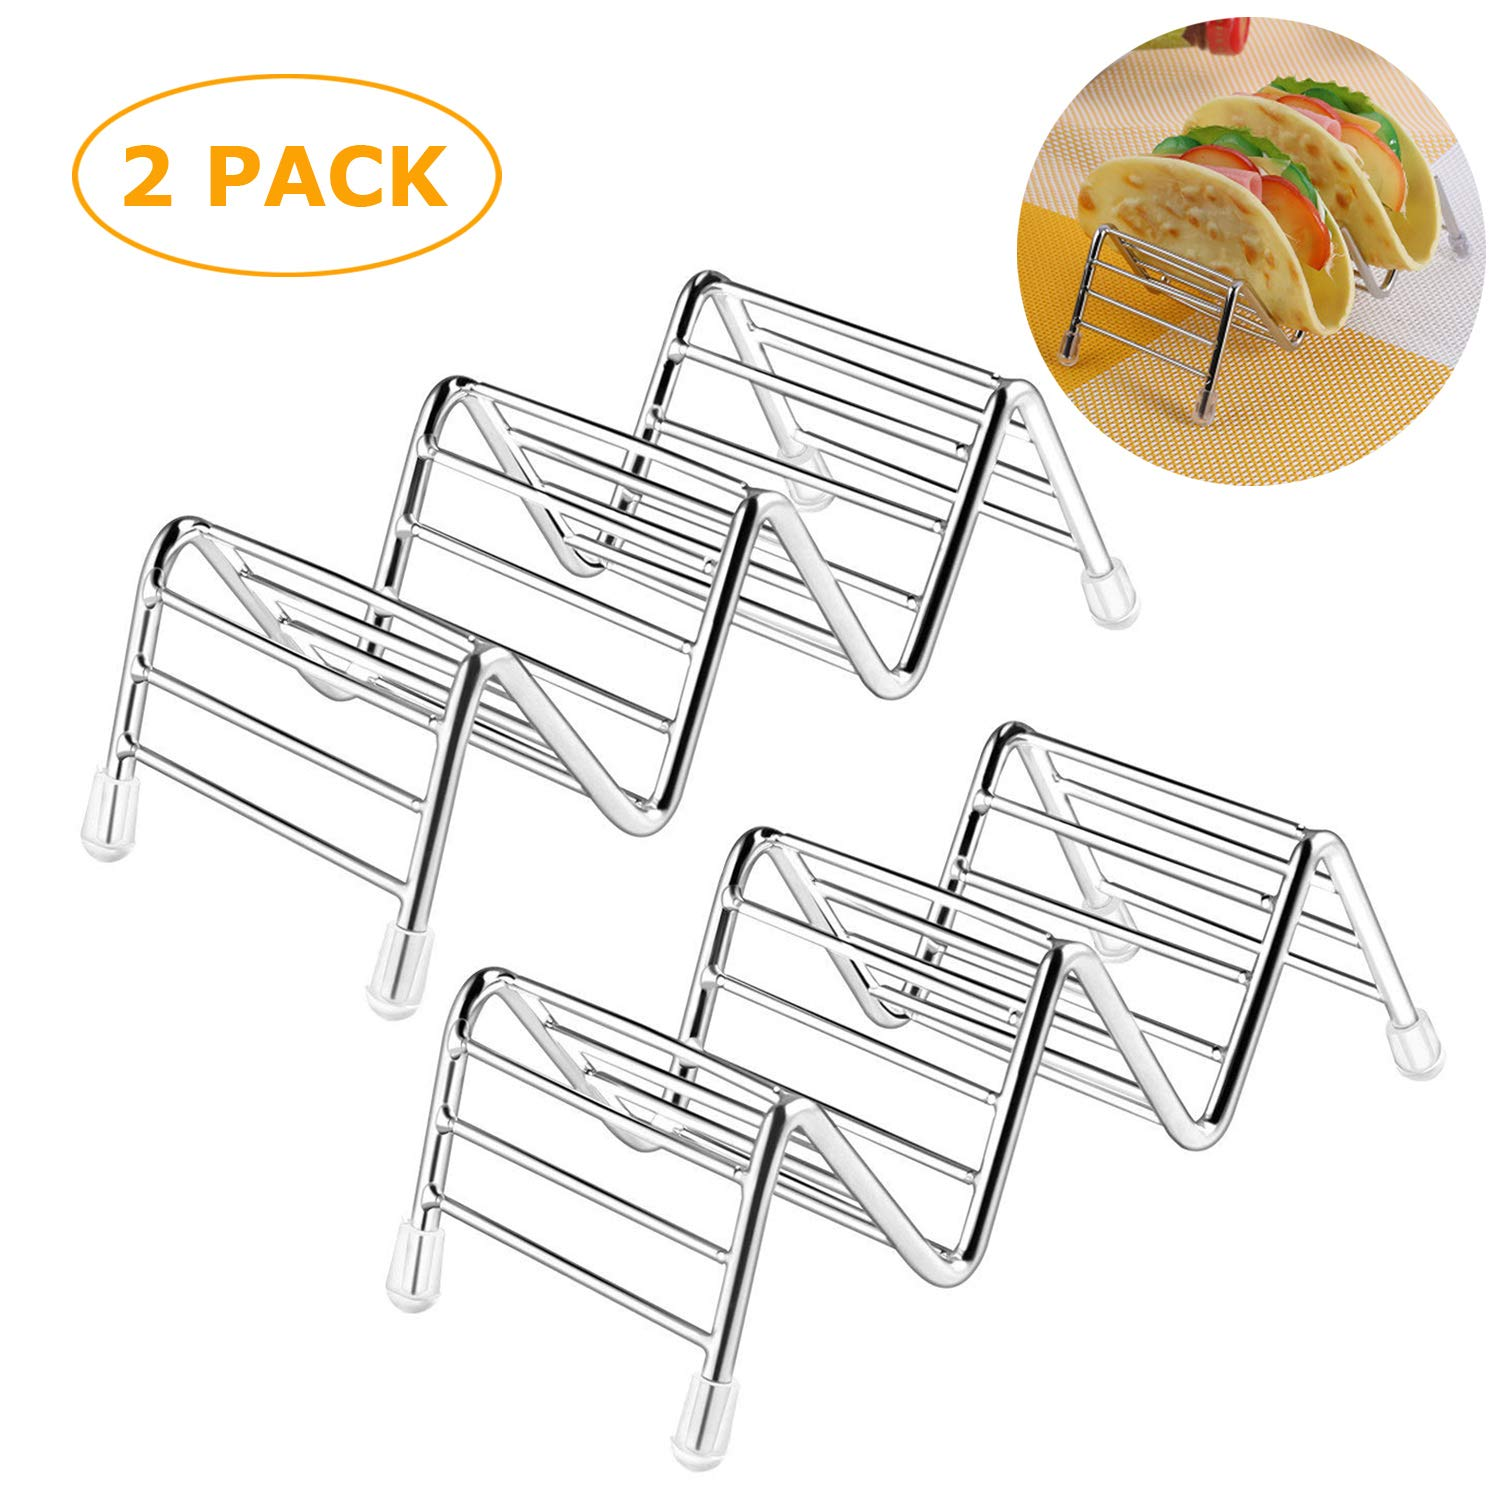 2 Pack Taco Holder, Taco Stand Stainless Steel Rustproof Taco Rack Hold 2 or 3 Hard or Soft Taco Shells Taco Truck Tray Style Oven Safe for Baking